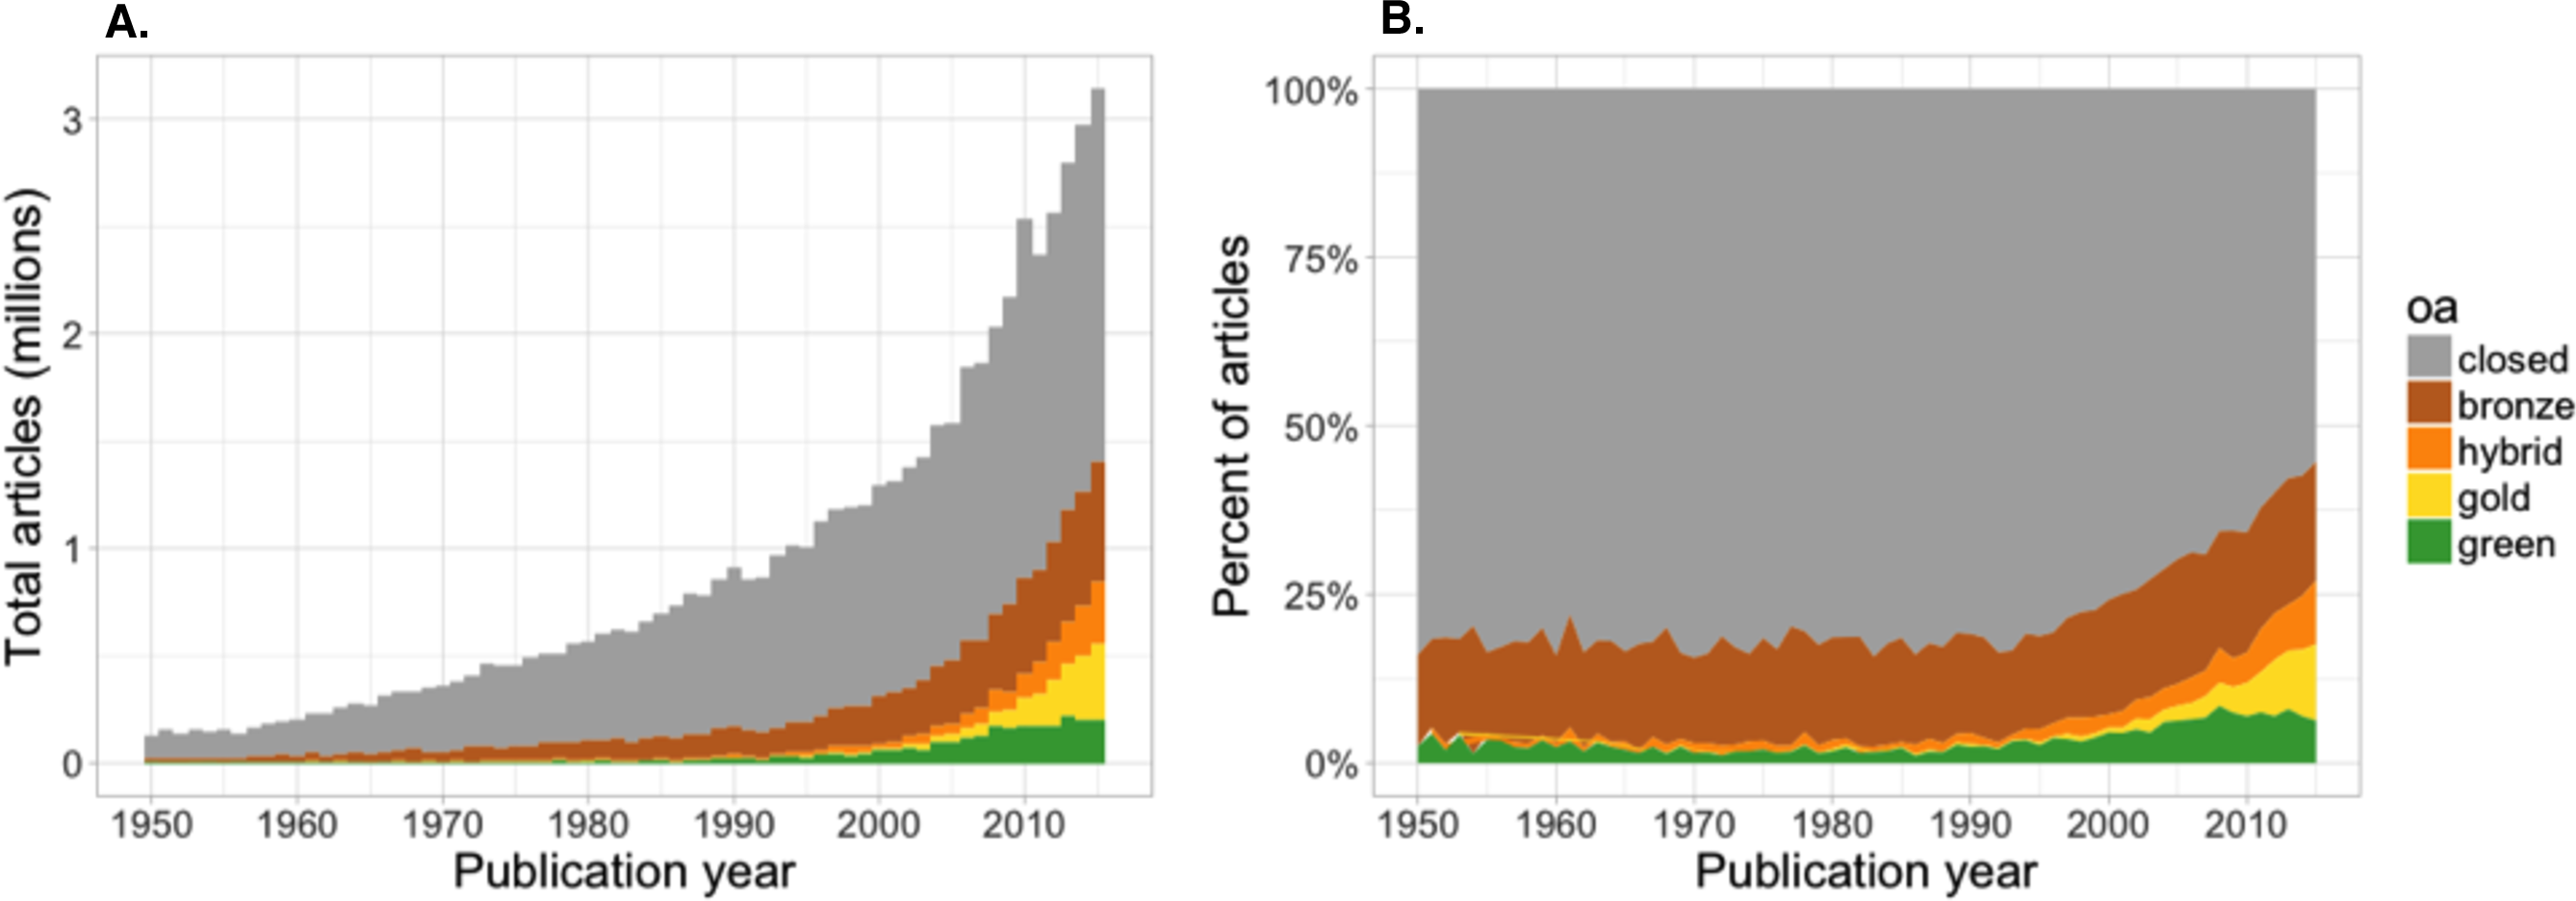 The number and proportion of open access articles split between Gold, Green, Hybrid, Bronze and closed access [from 1950 - 2016; @piwowar2018]. To learn about the open access classification system, see [here](https://en.wikipedia.org/wiki/Open_access).